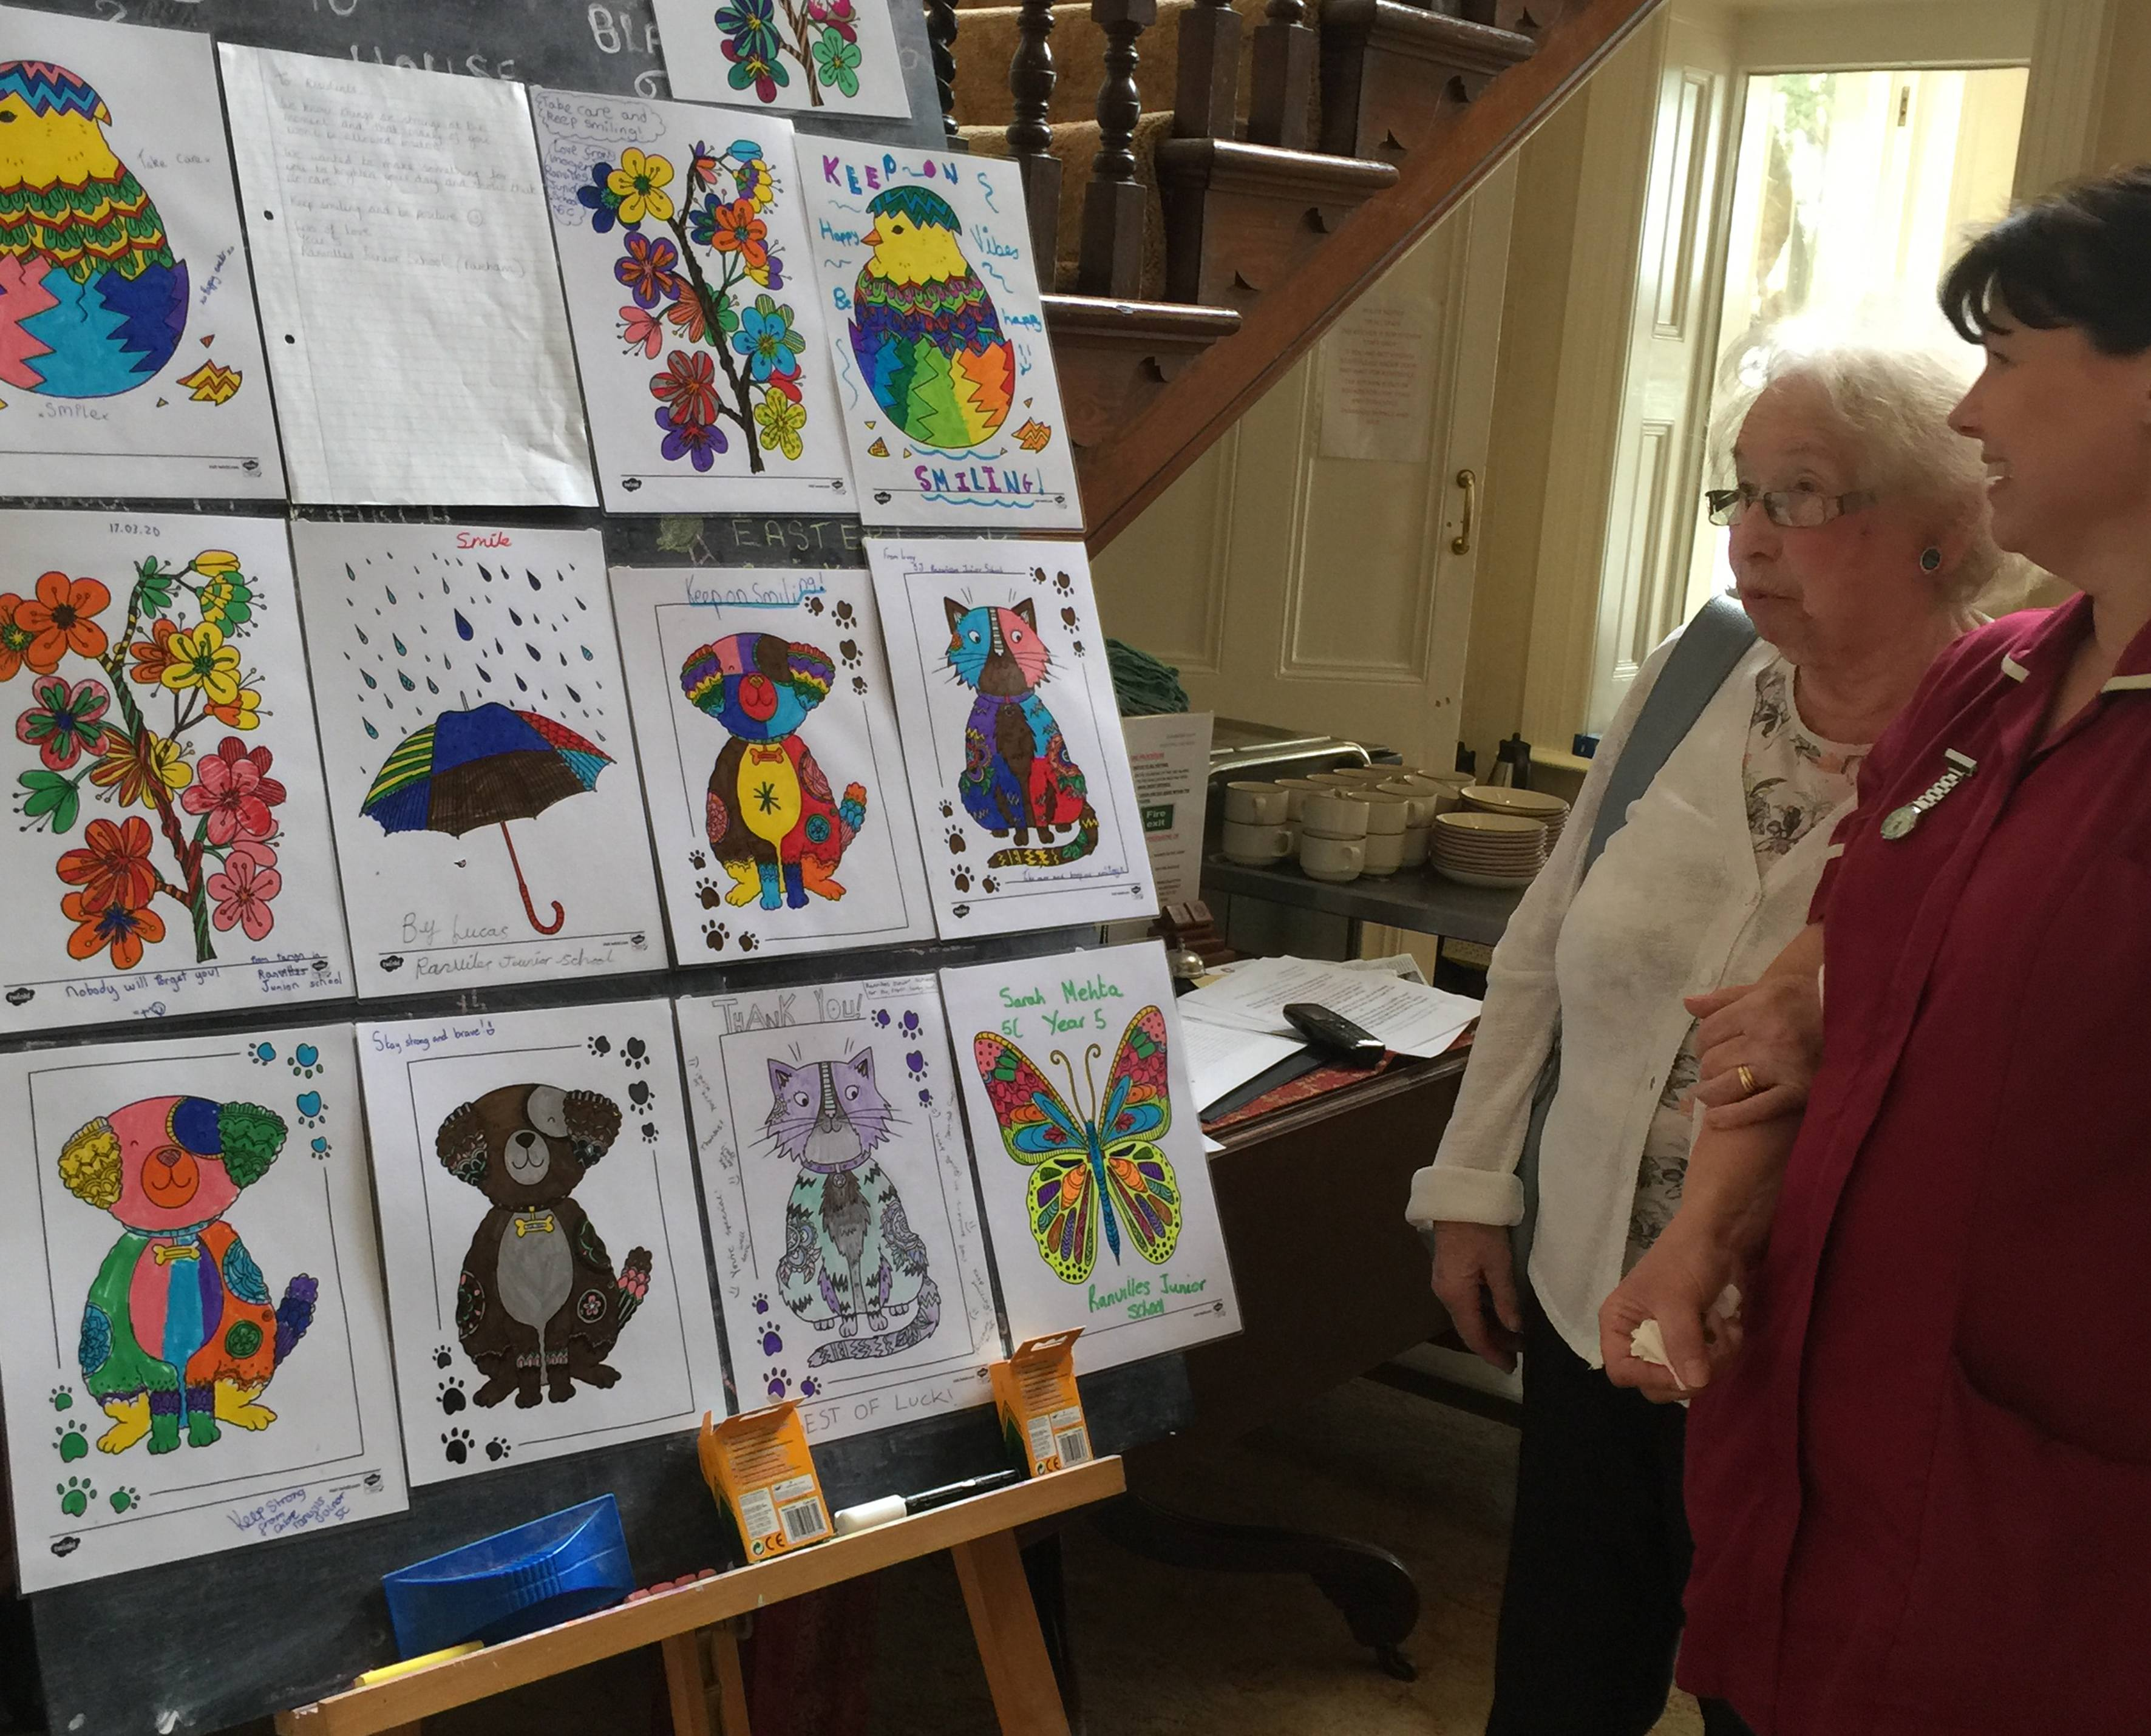 Viewing the children's artwork